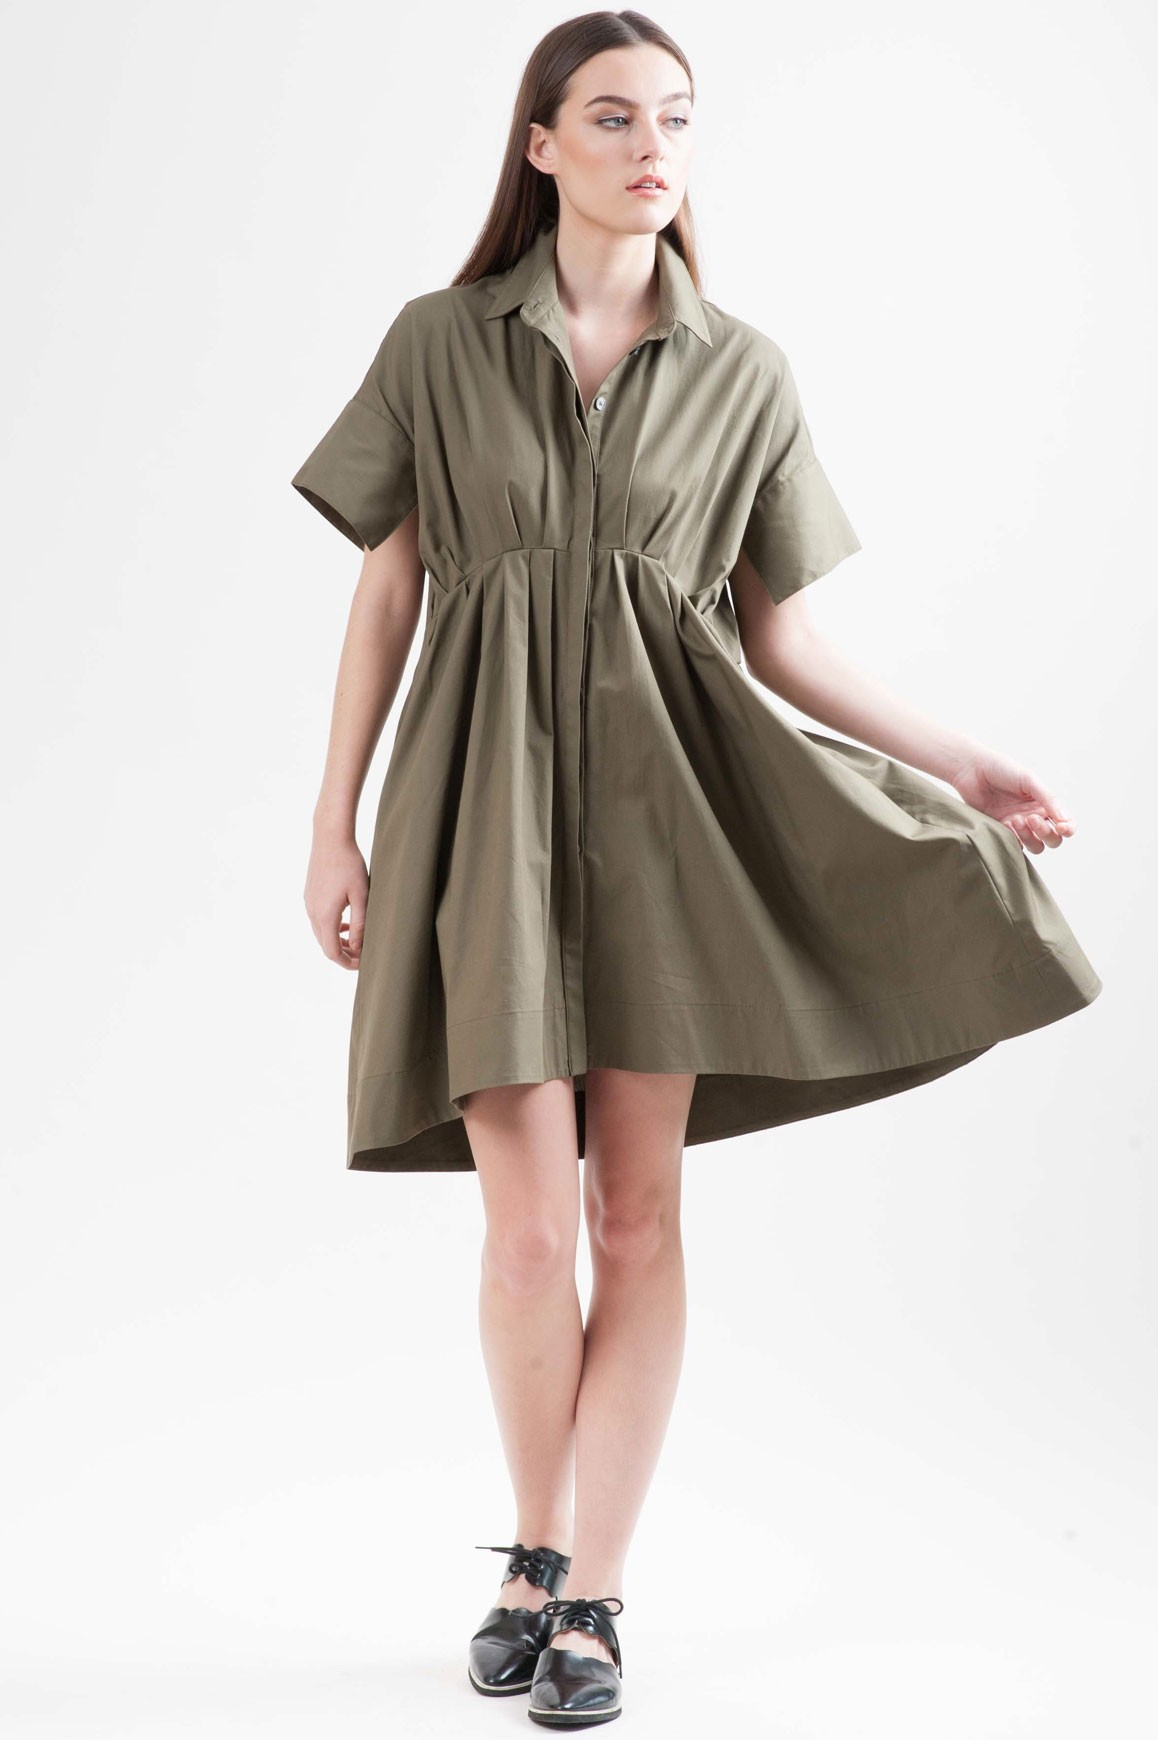 c7dd194d8dc8 Shirt Dresses - SophTheShopper